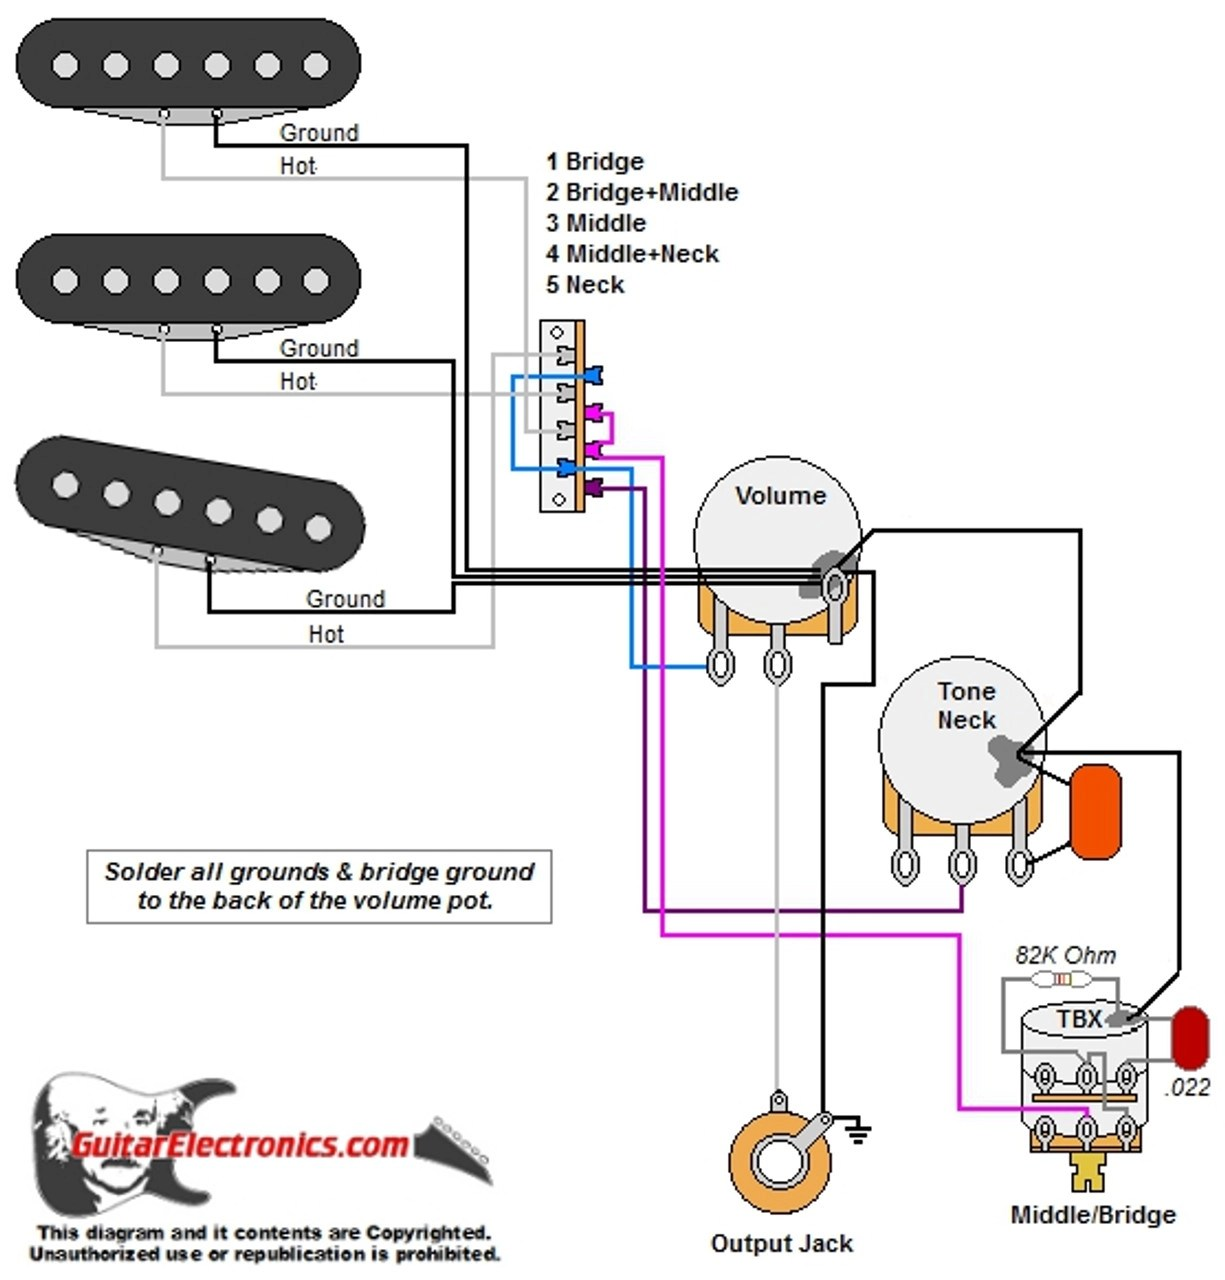 hight resolution of p90 tbx wiring diagram wiring diagram expert p90 wiring diagram tbx